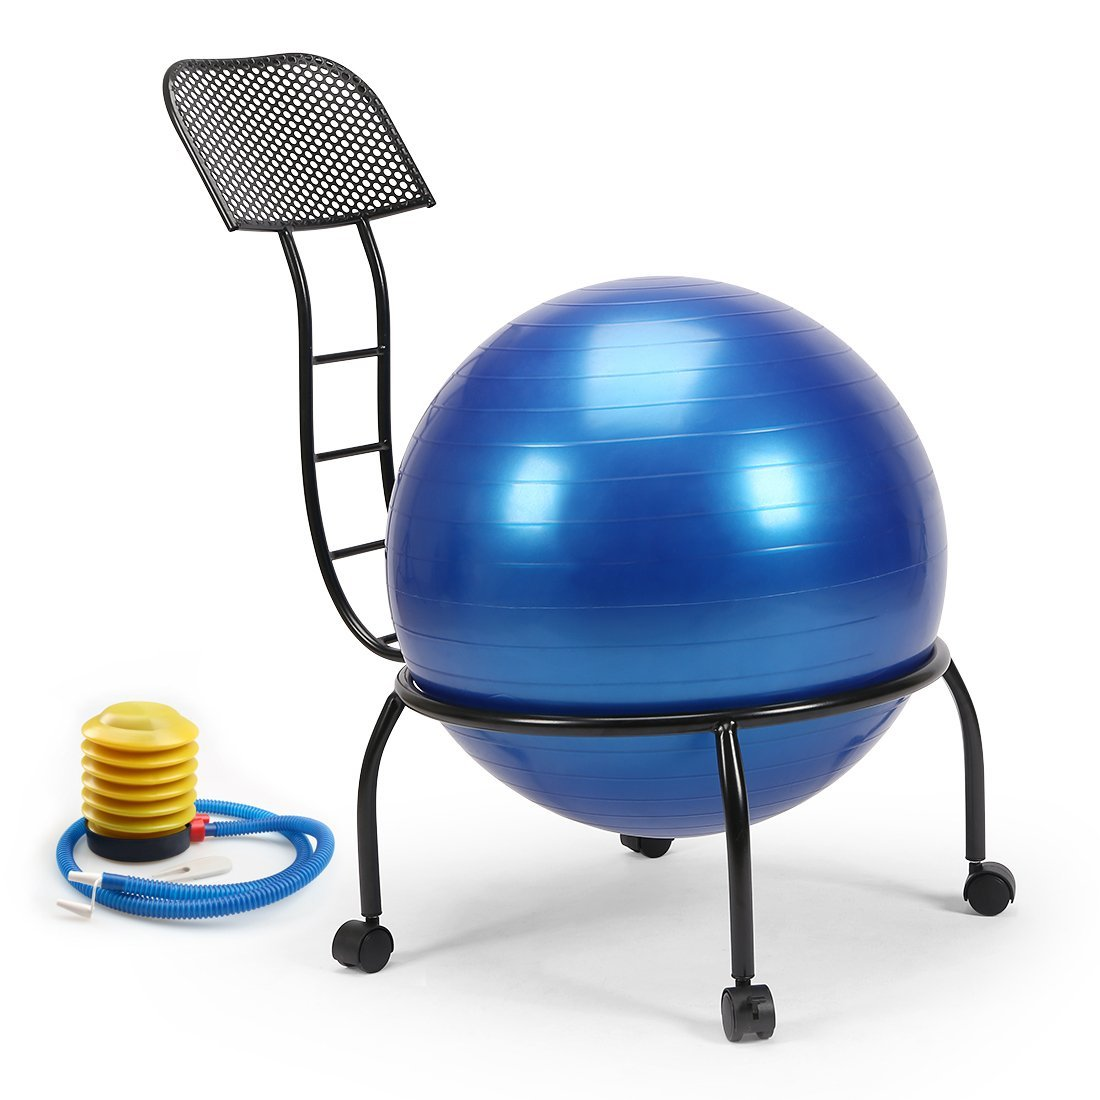 Live Up Balance Ball posture Chair Exercise Fitness 20.3 Inch Yoga Ball Chair Metal Frame With Wheels for Home and Office